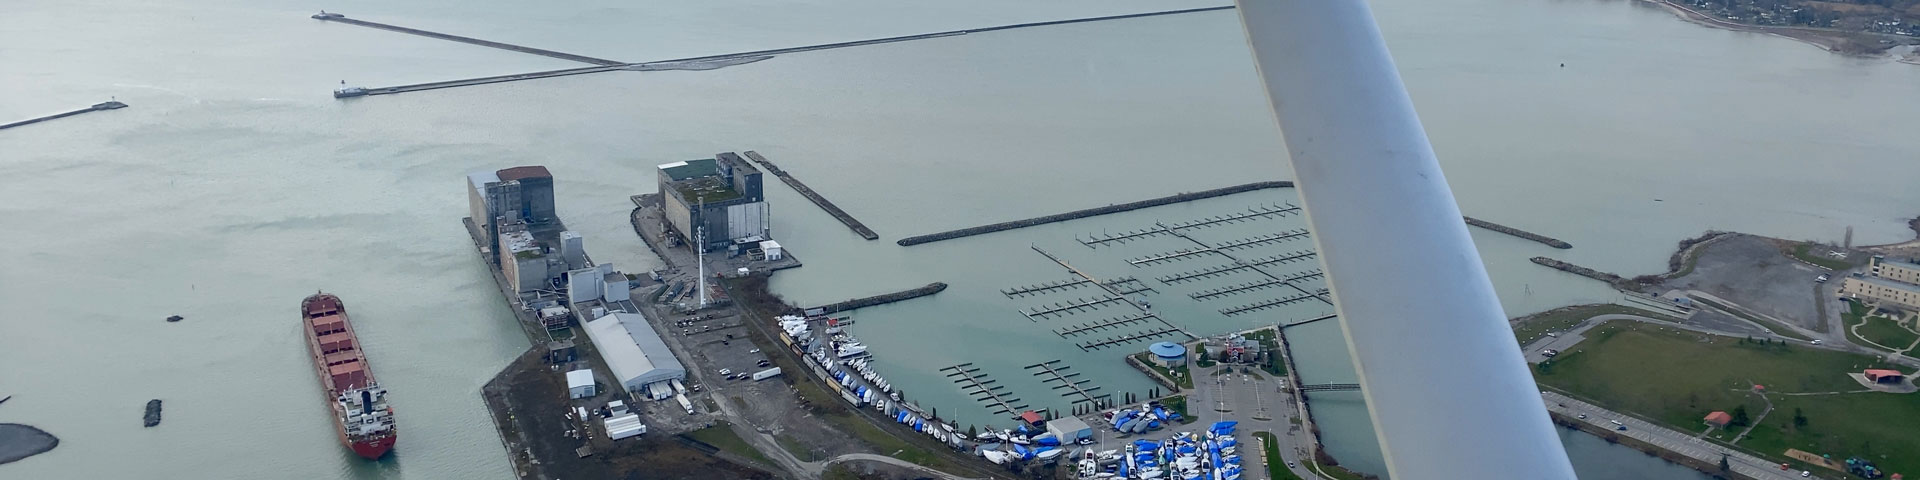 Port Colborne marina and Welland canal entrance